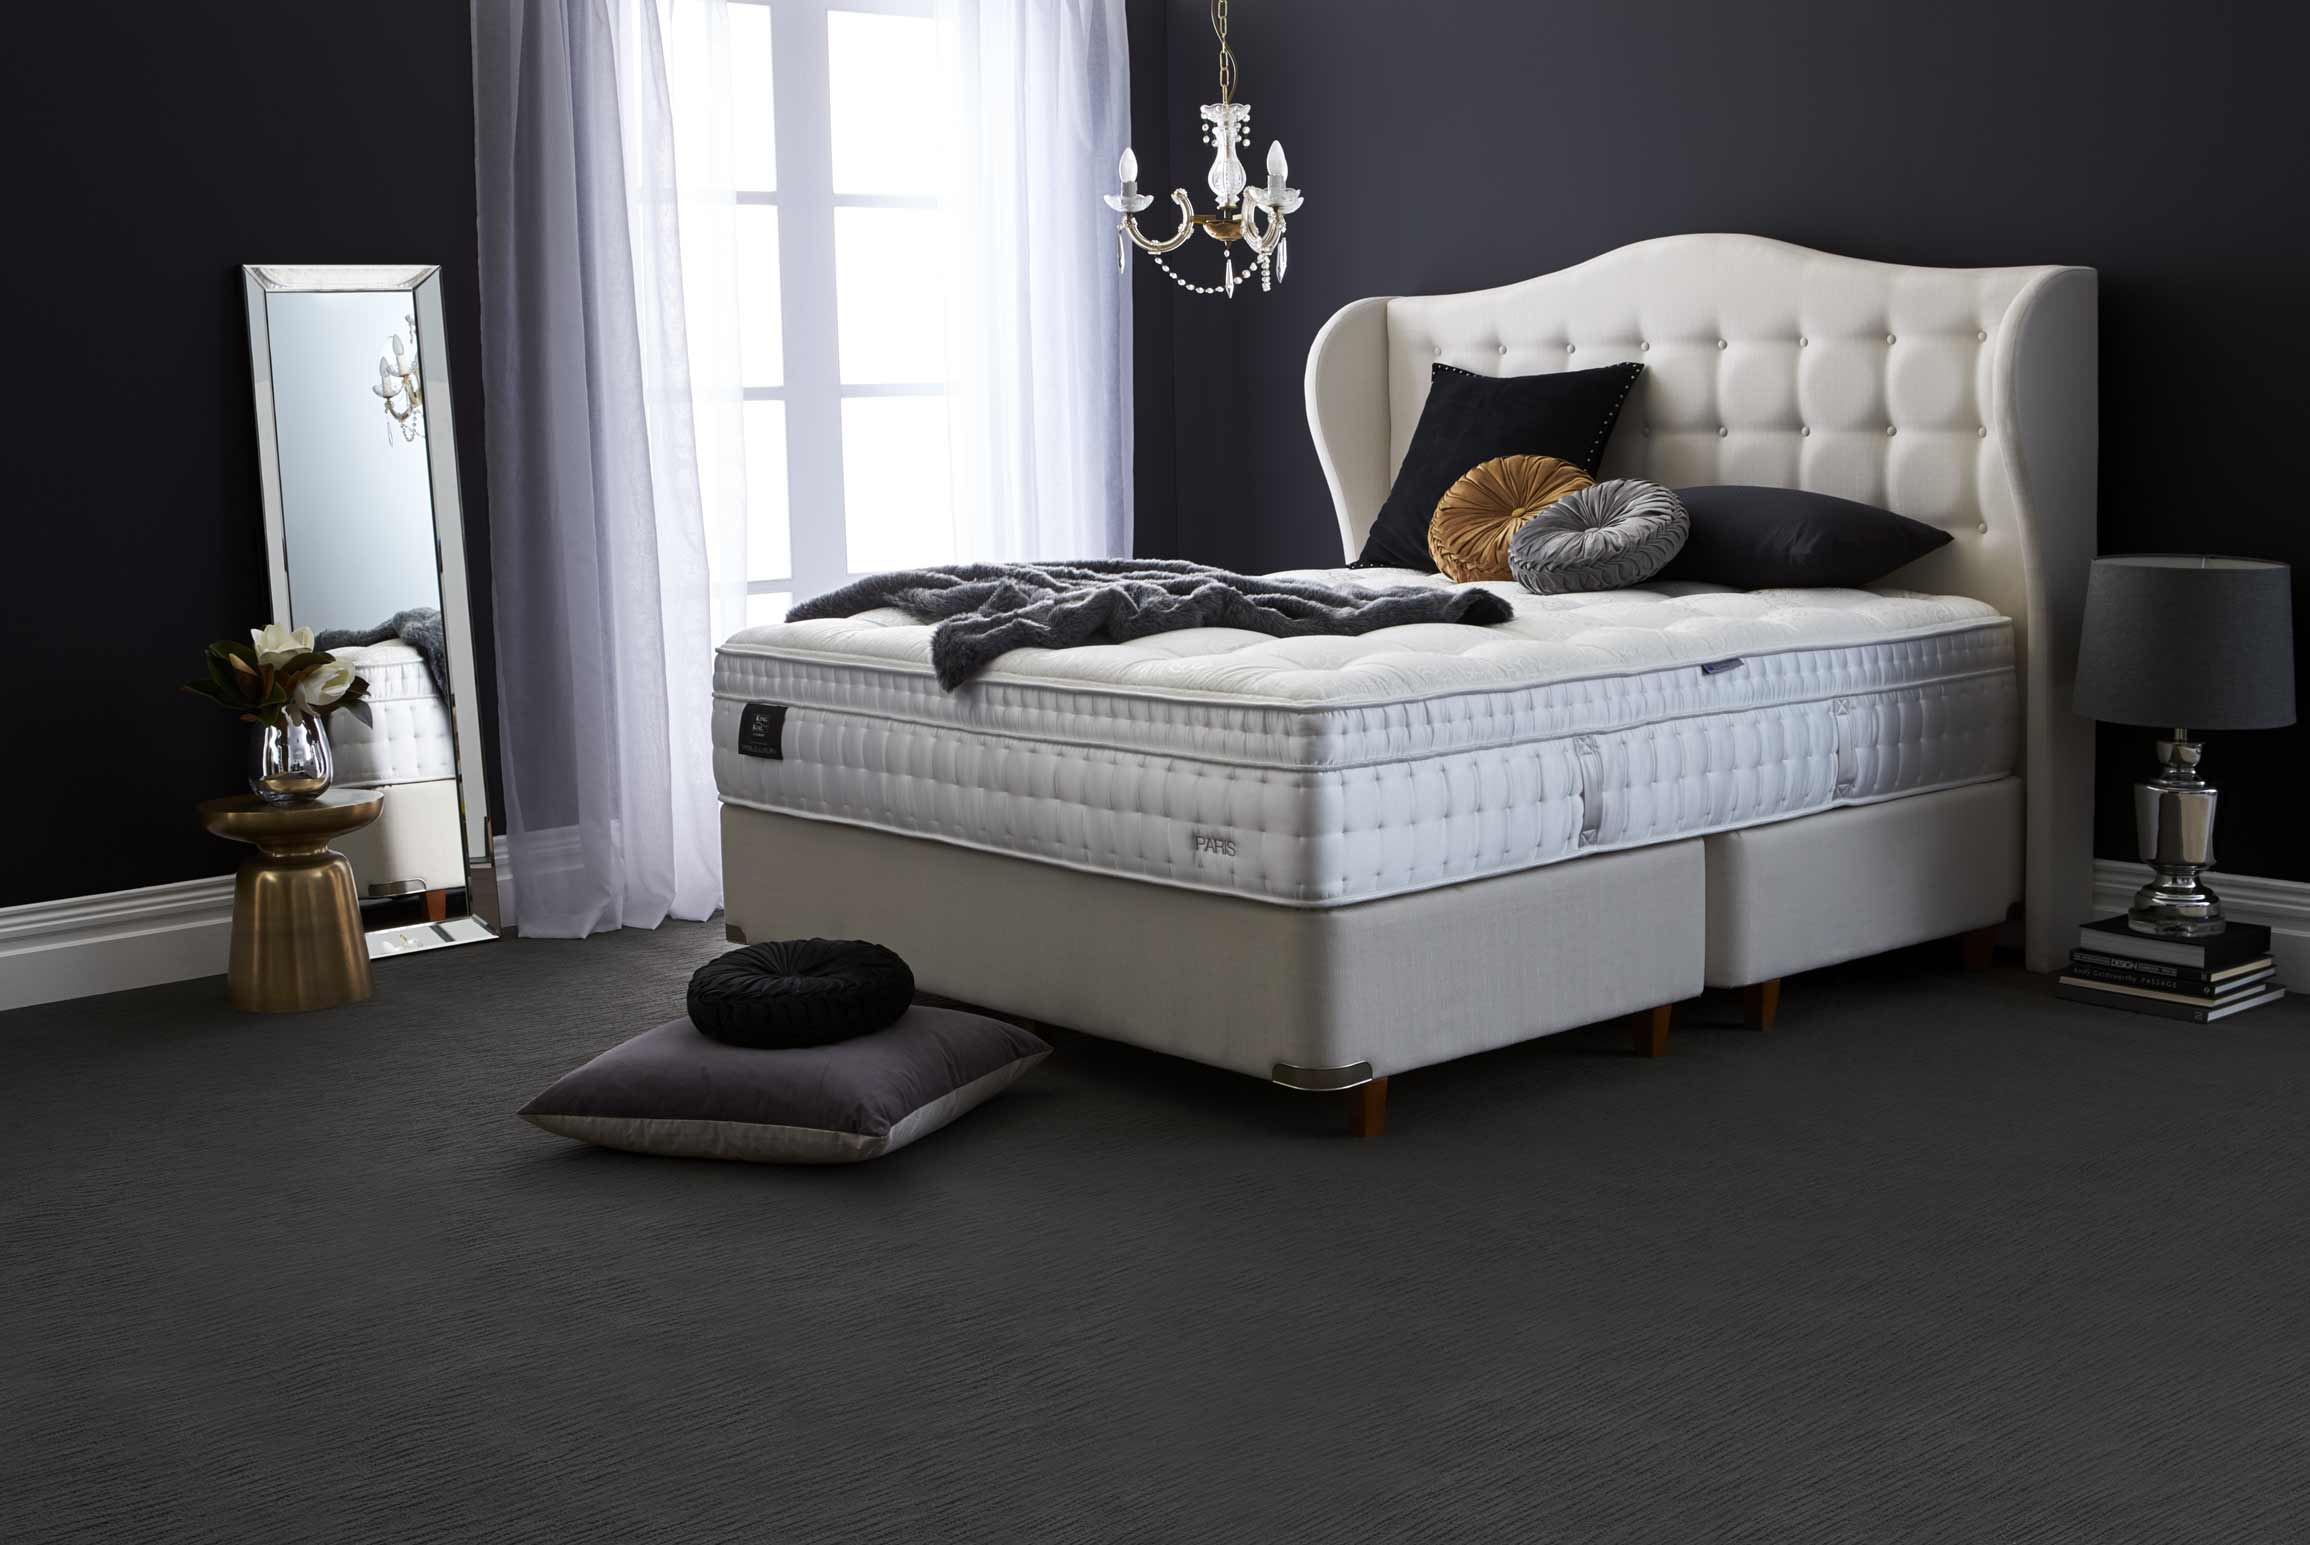 World Luxury Brighton Bedhead Bedroom Furniture Forty Winks